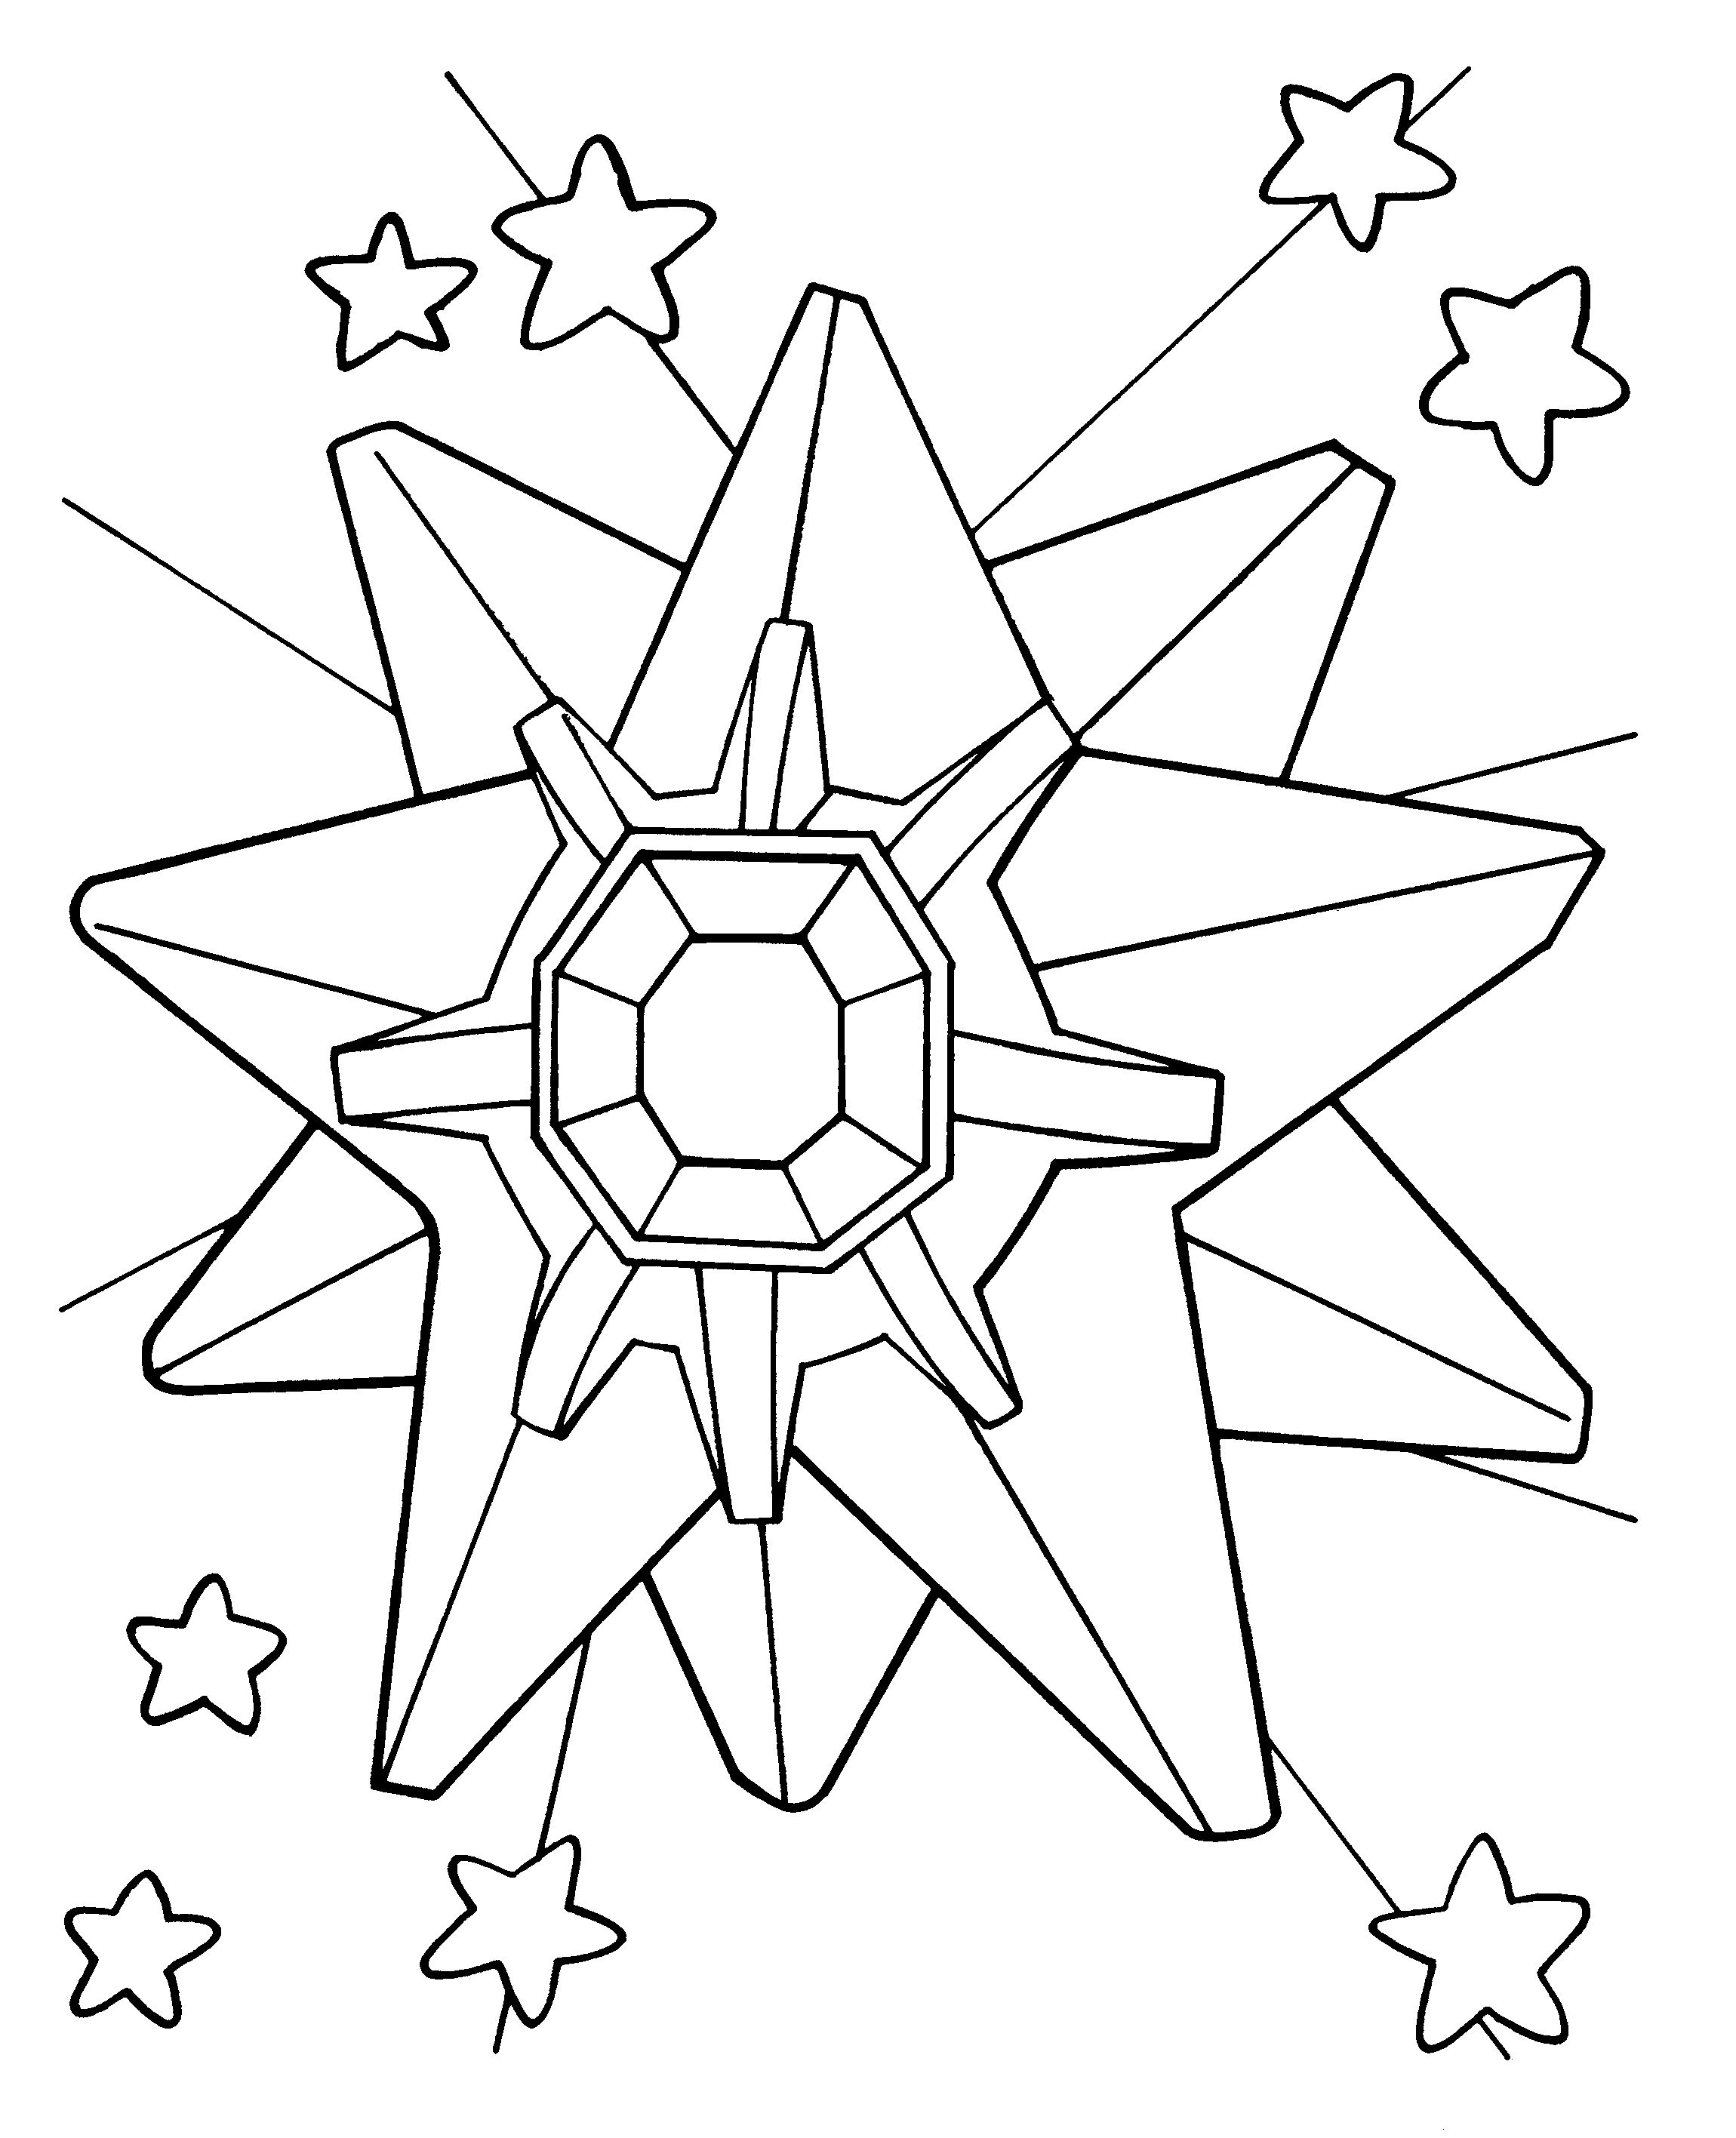 Pokemon Image By Marion Keehl Pokemon Coloring Pages Pokemon